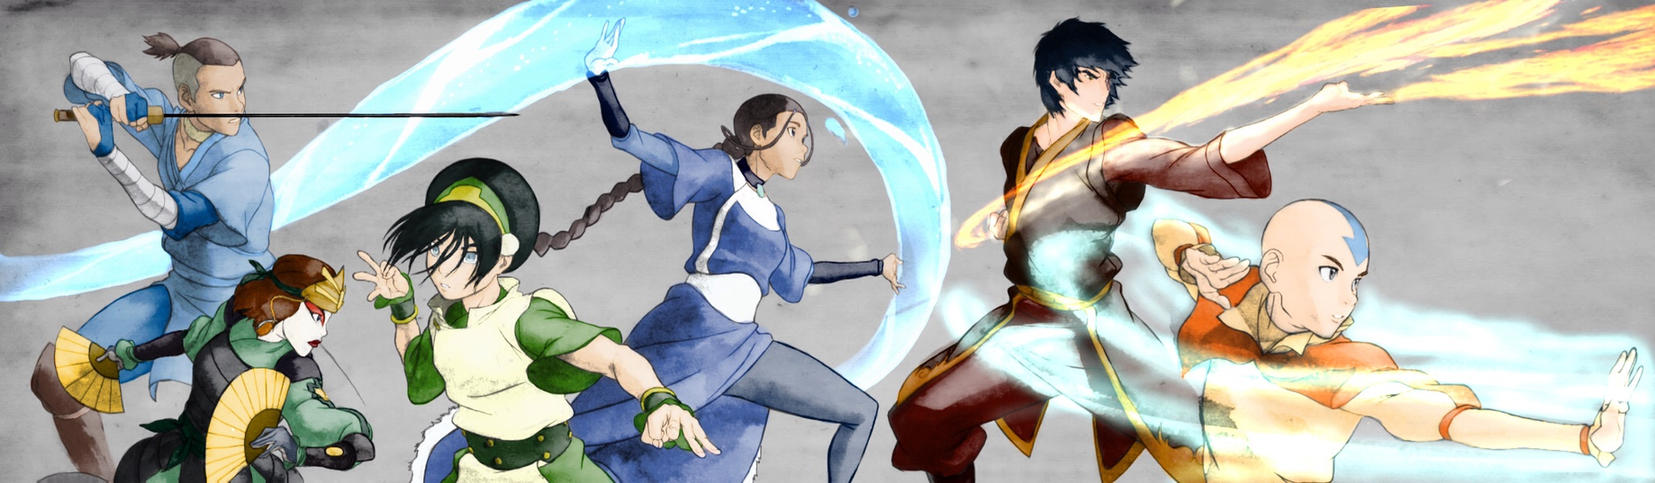 Team Avatar by BrotherWolfLv05